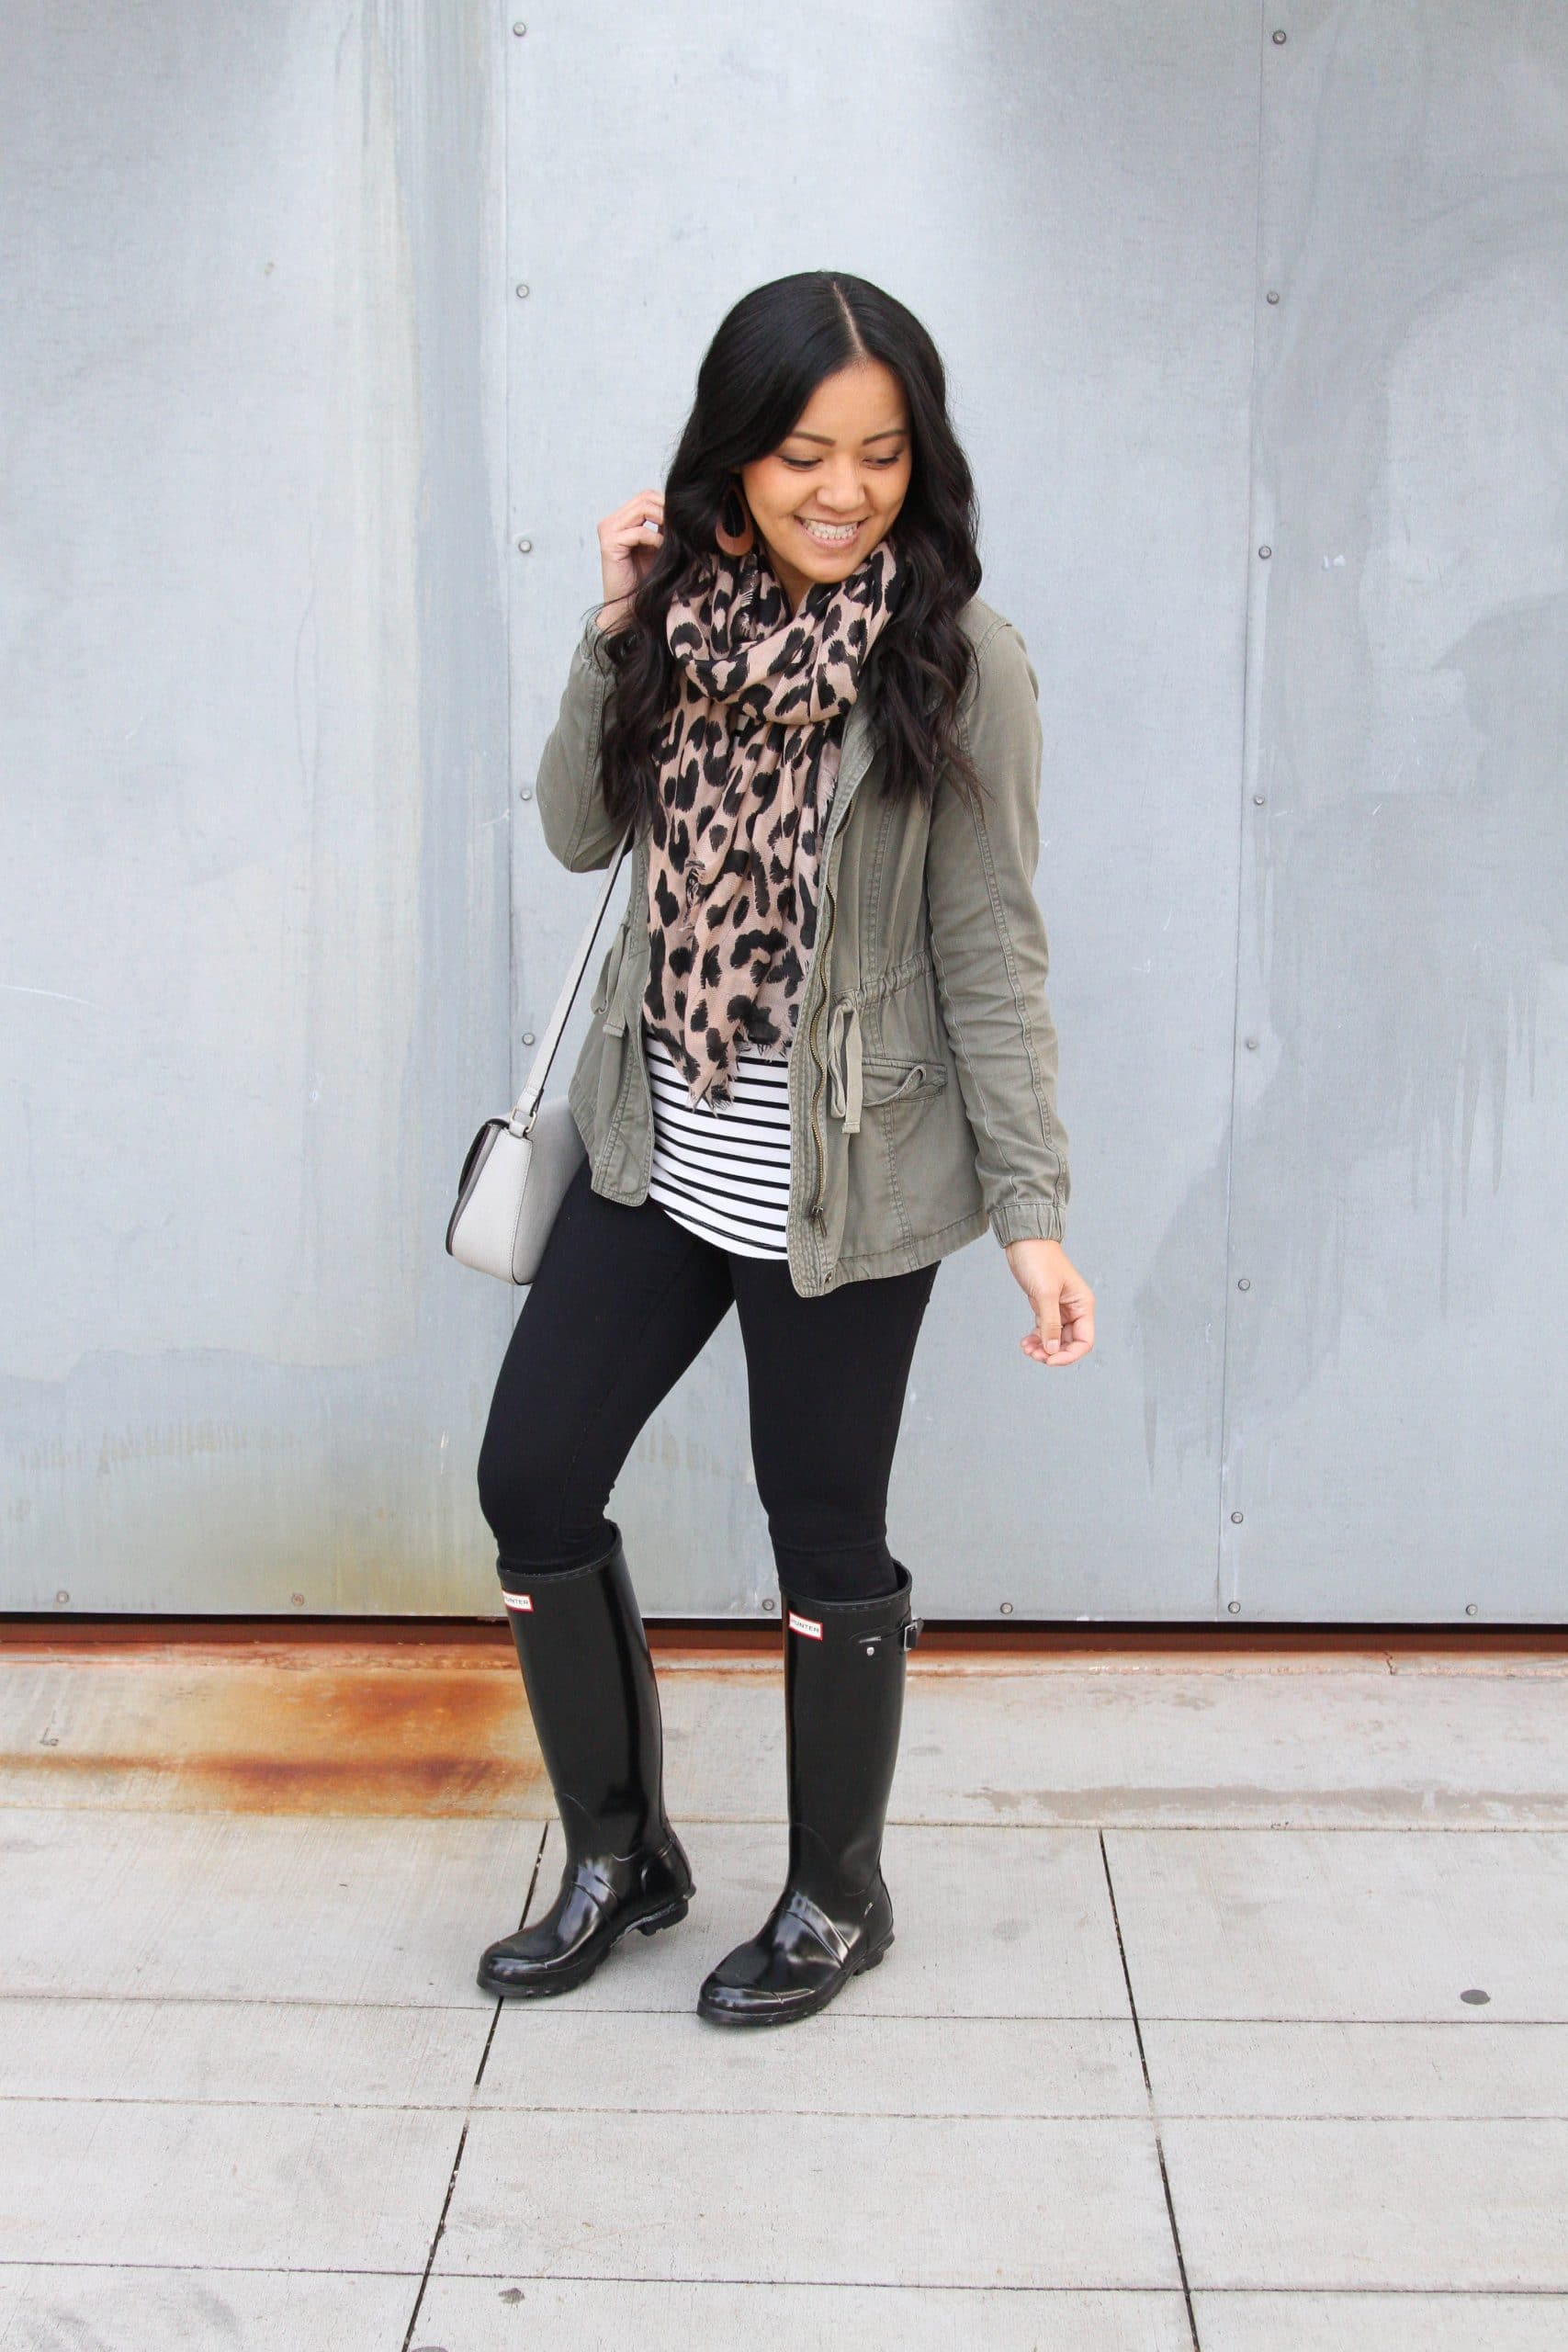 Winter Leggings Outfit: black leggings + striped tee + black rain boots + olive utility jacket + brown leather earrings + leopard scarf + gray crossbody bag